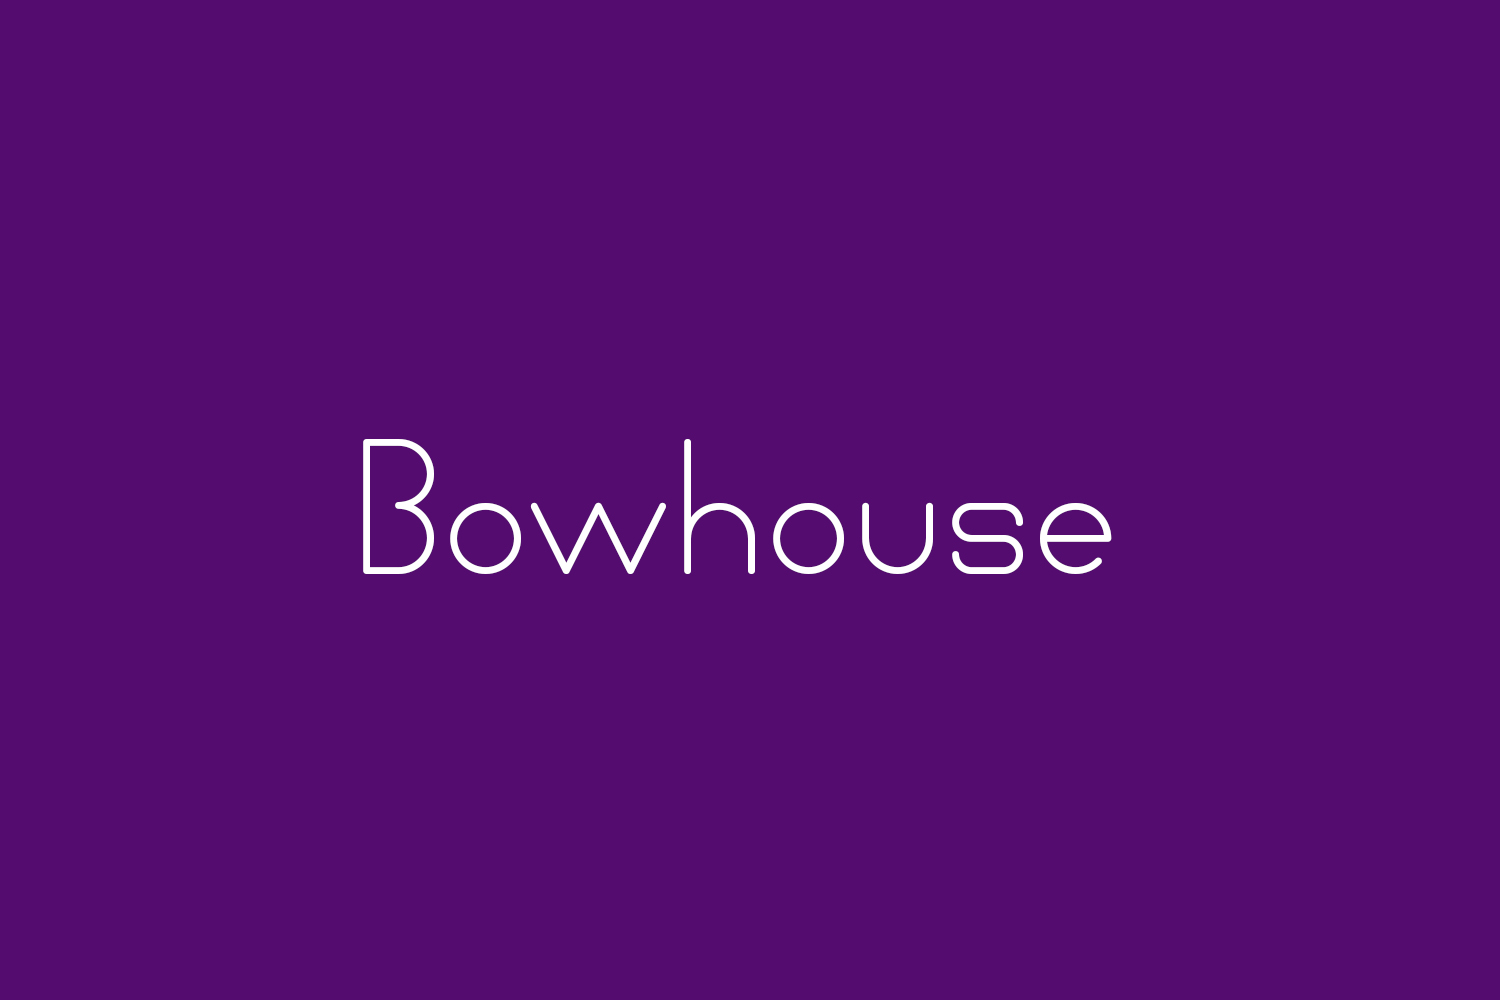 Bowhouse Free Font